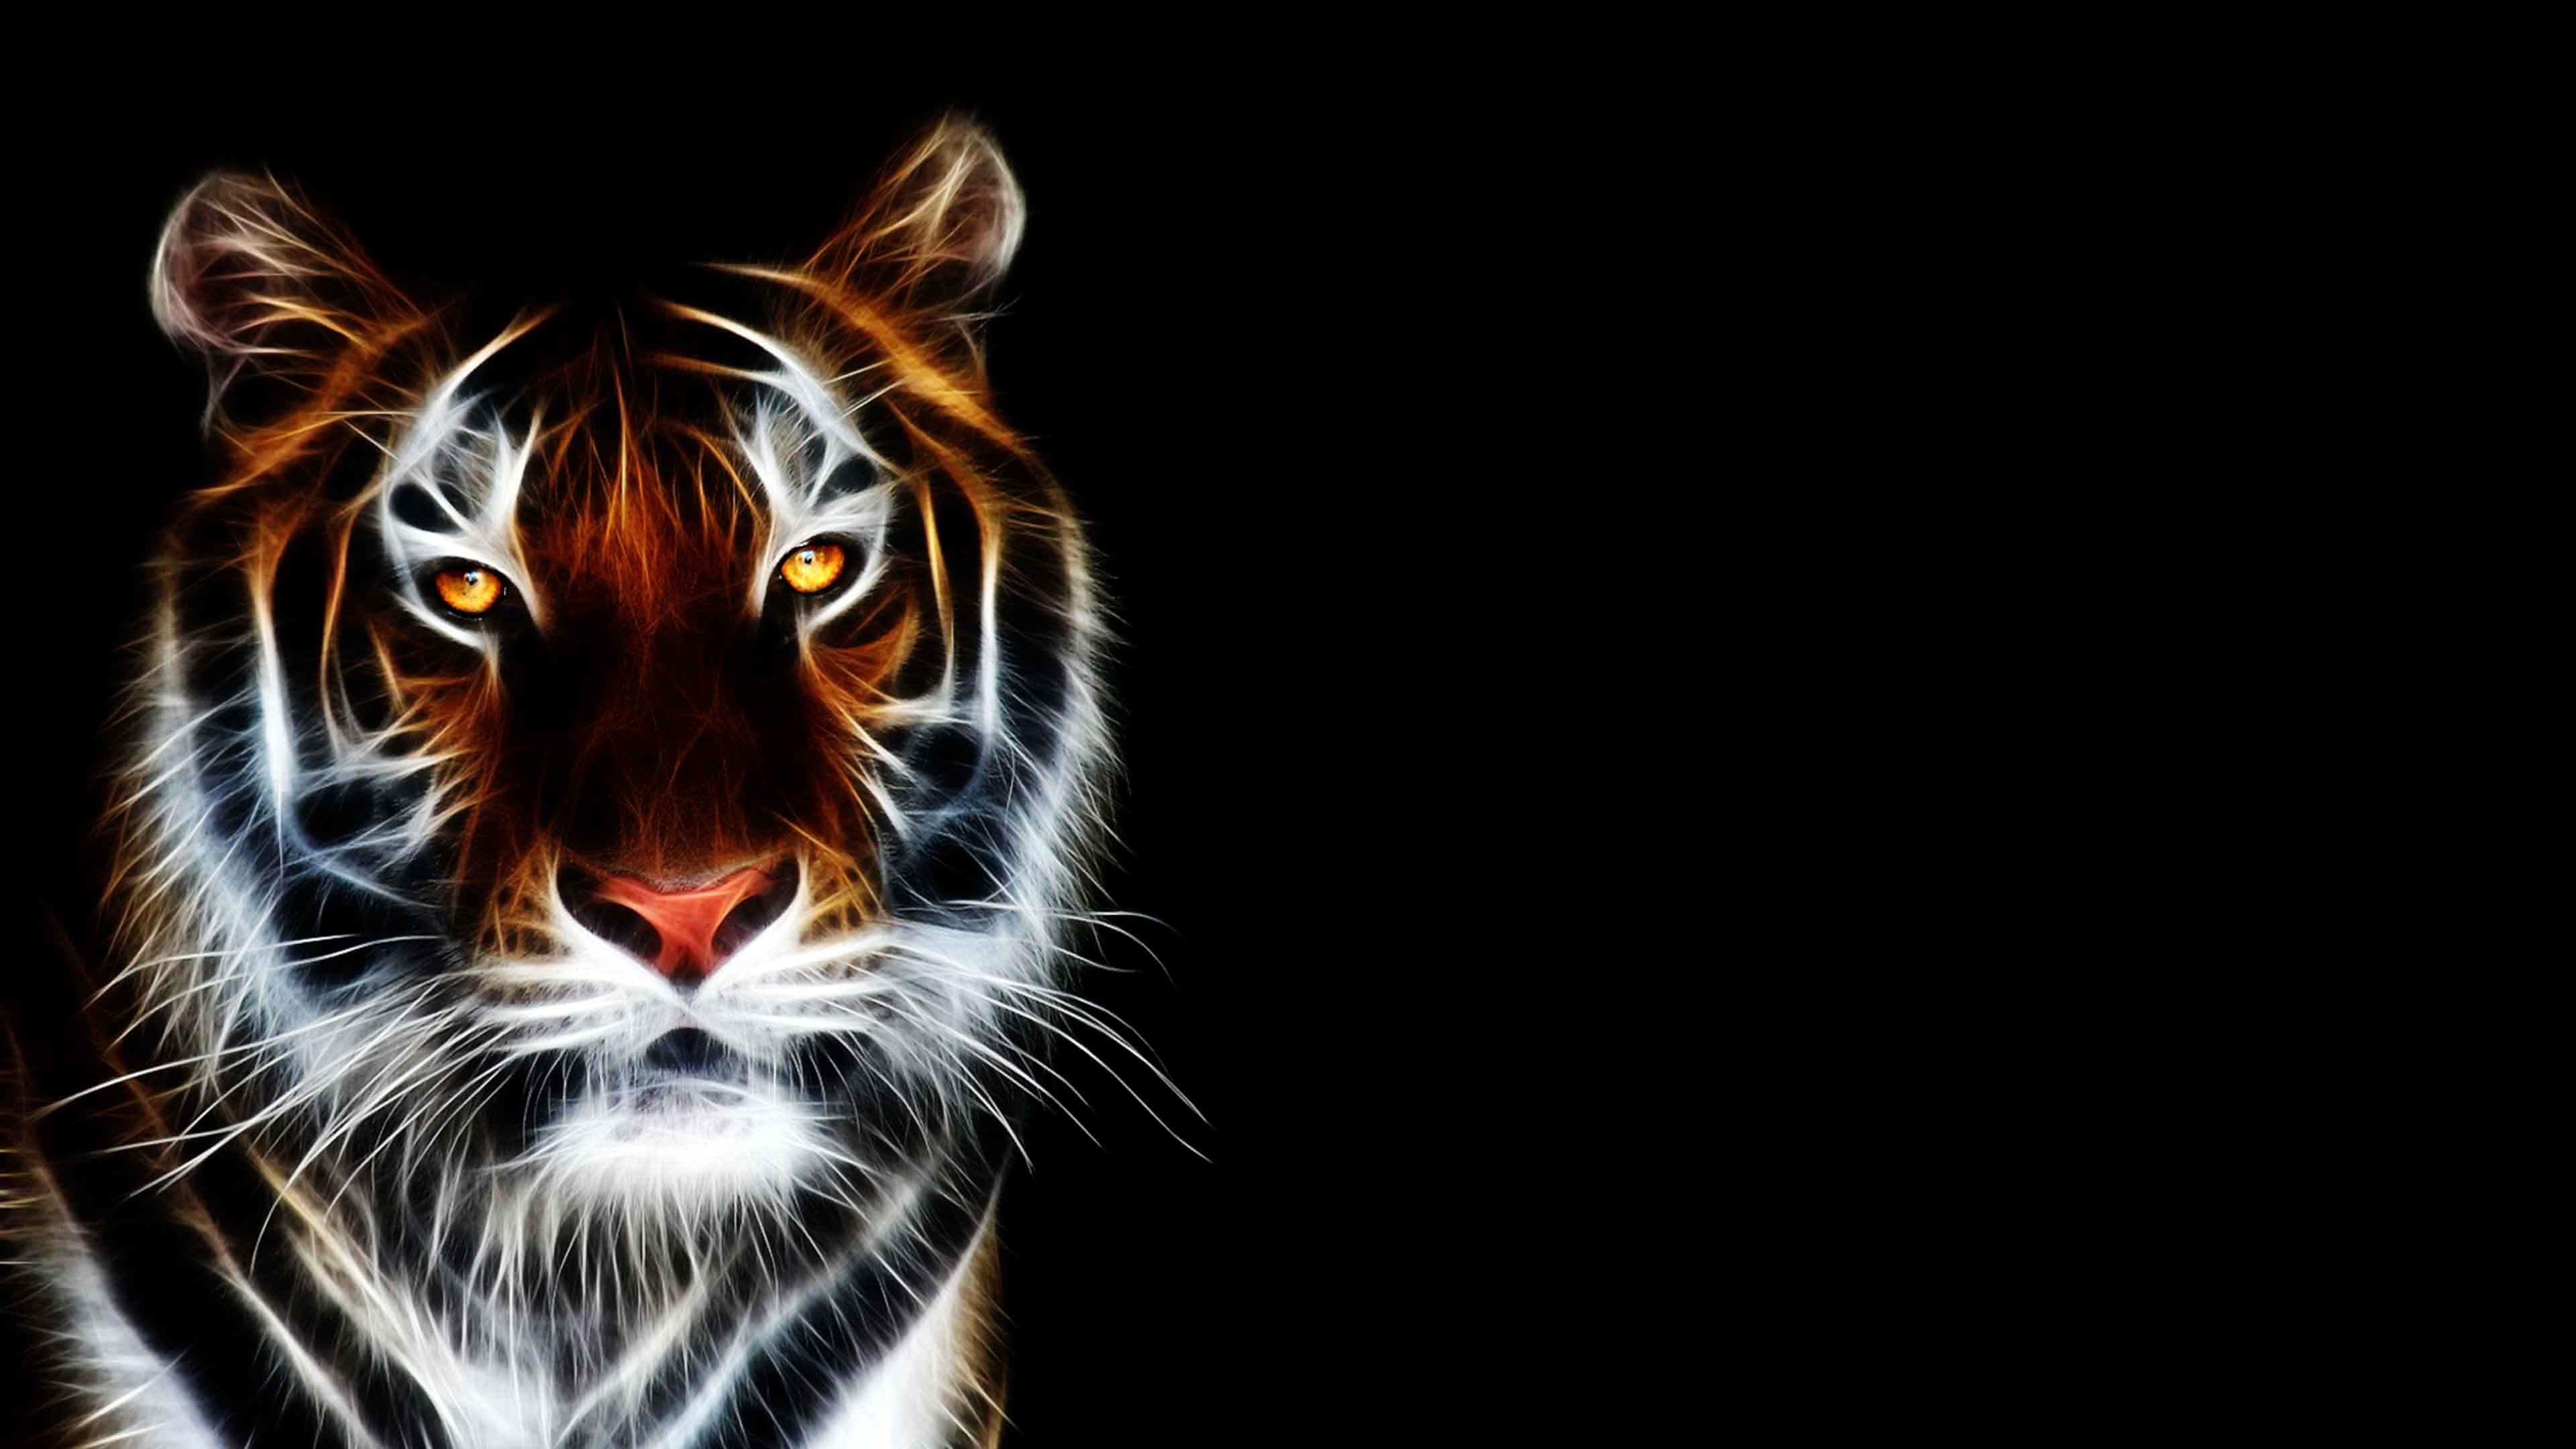 Best 3d Hd Wallpapers 72 Images